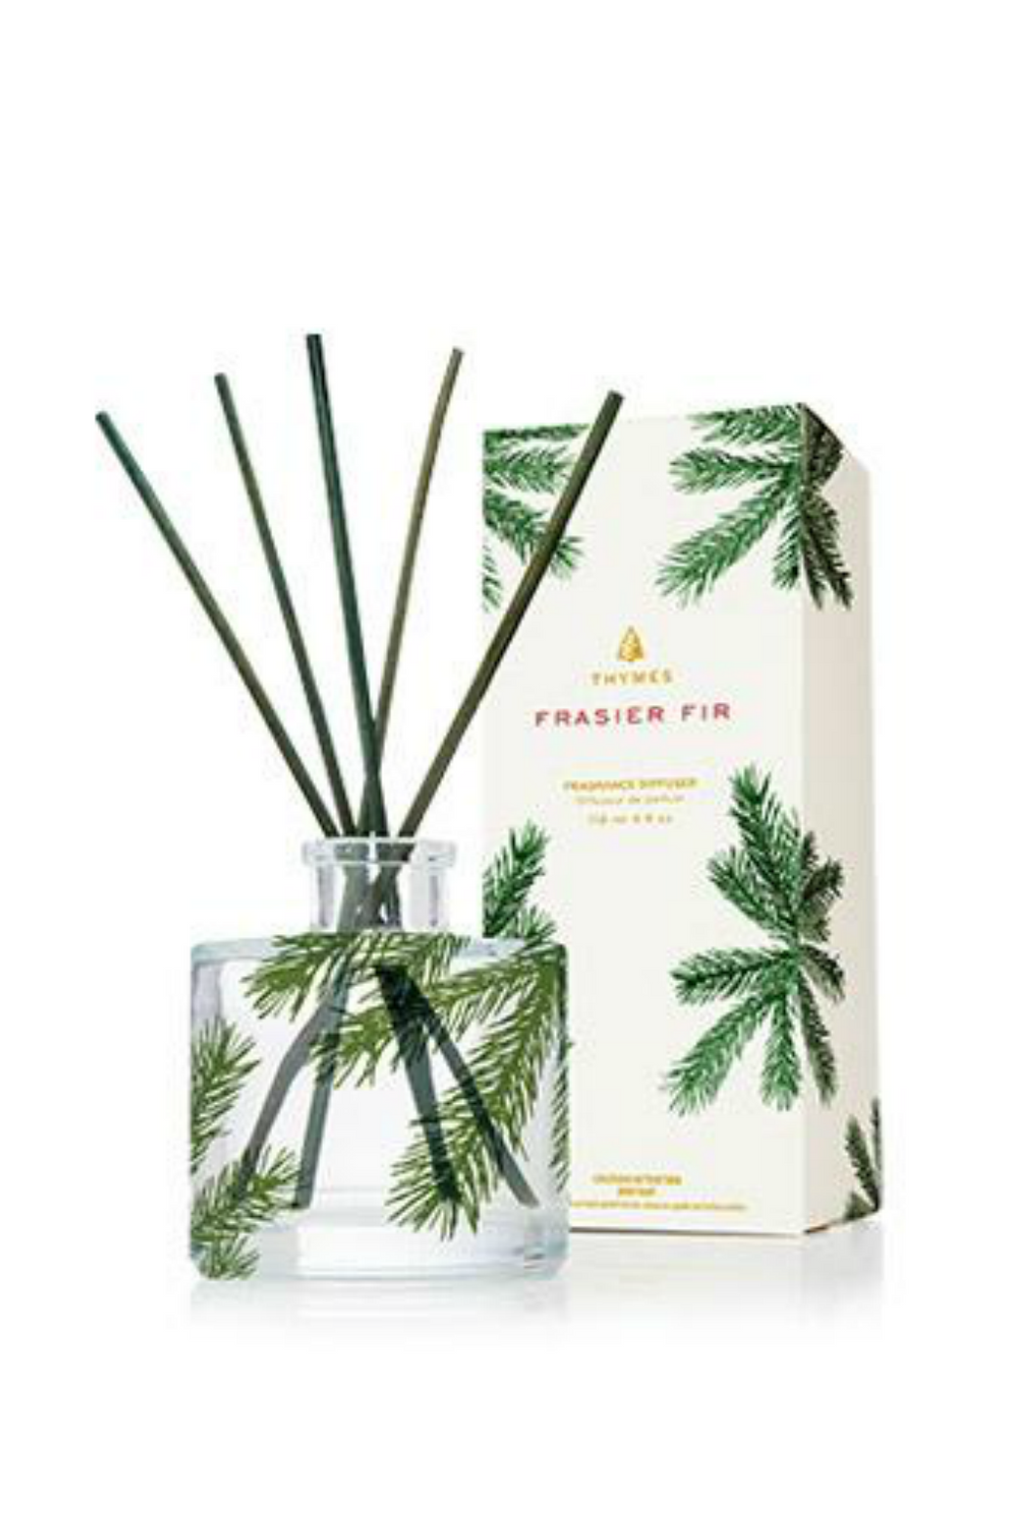 Thymes Frasier Fir Reed Diffuser, Petite Pine Needle